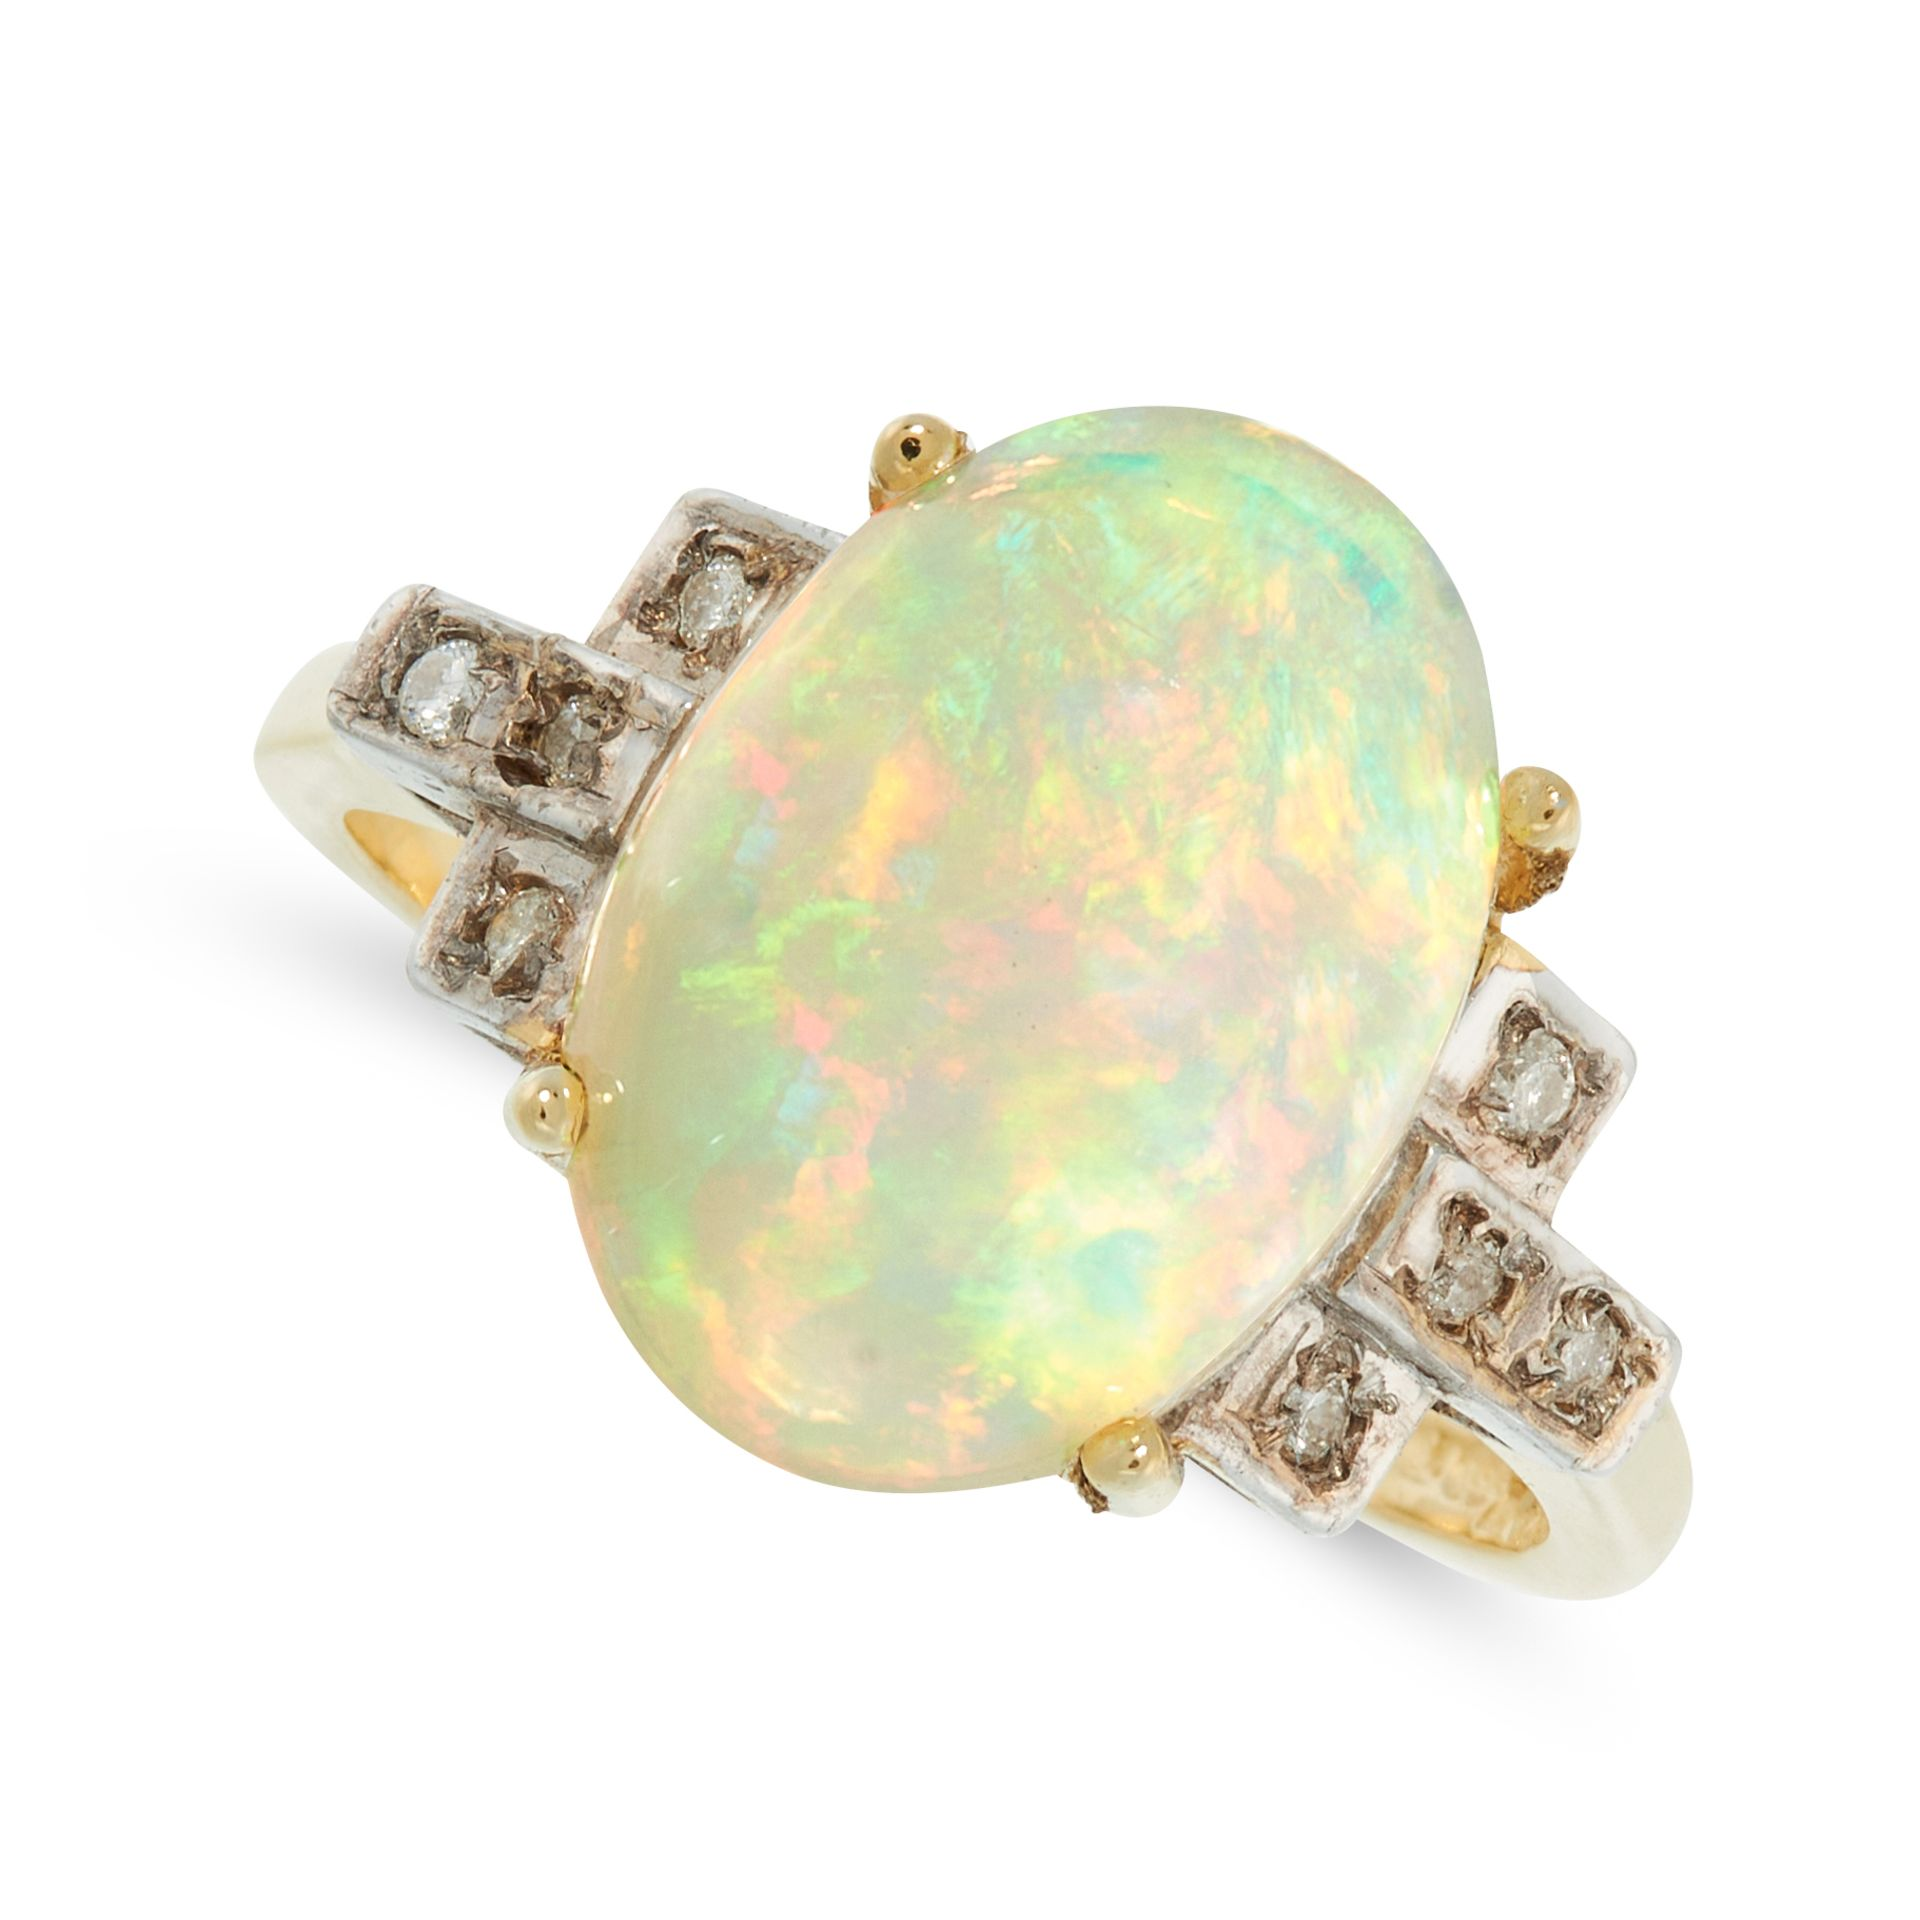 AN OPAL AND DIAMOND DRESS RING in 18ct yellow gold, set with an oval cabochon opal between stepped